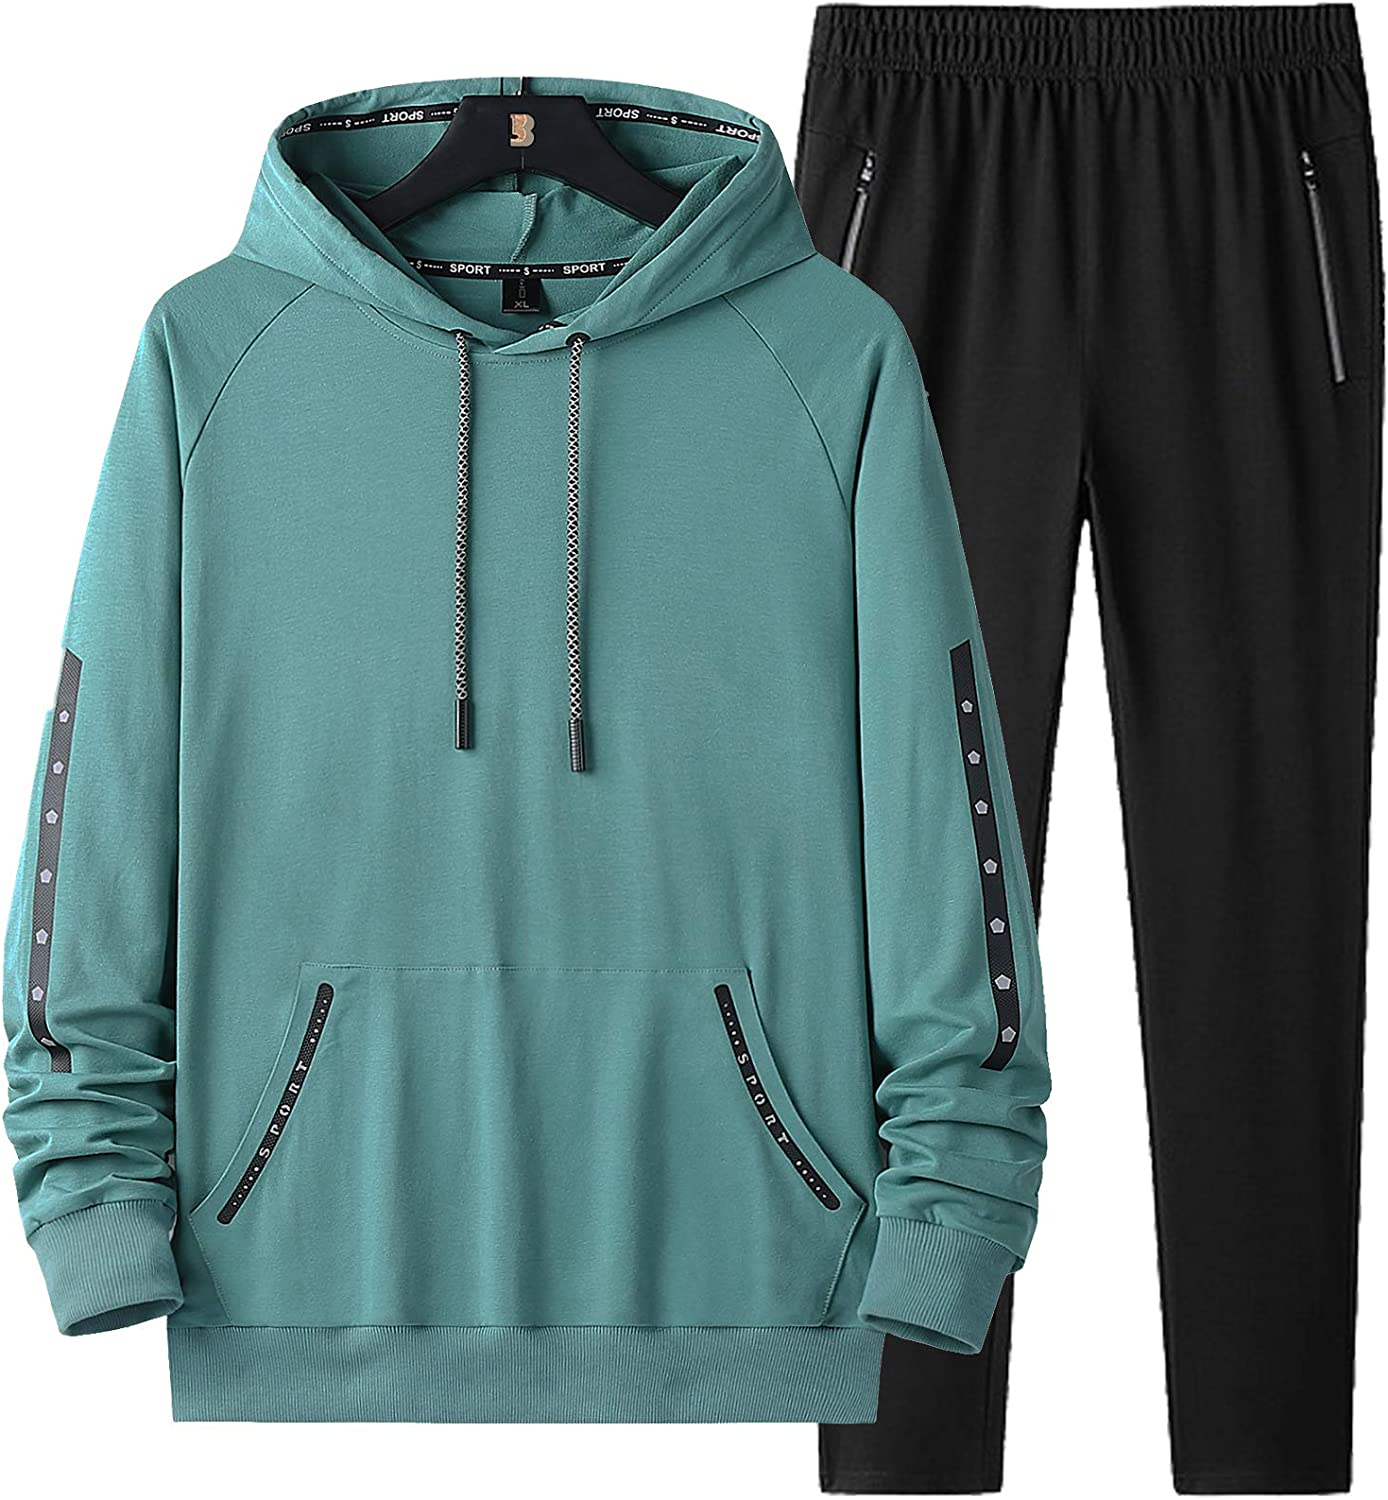 DOSLAVIDA Men's Athletic Sweatsuits Set Ranking TOP7 Piece T 2 Hooded Some reservation Outfits